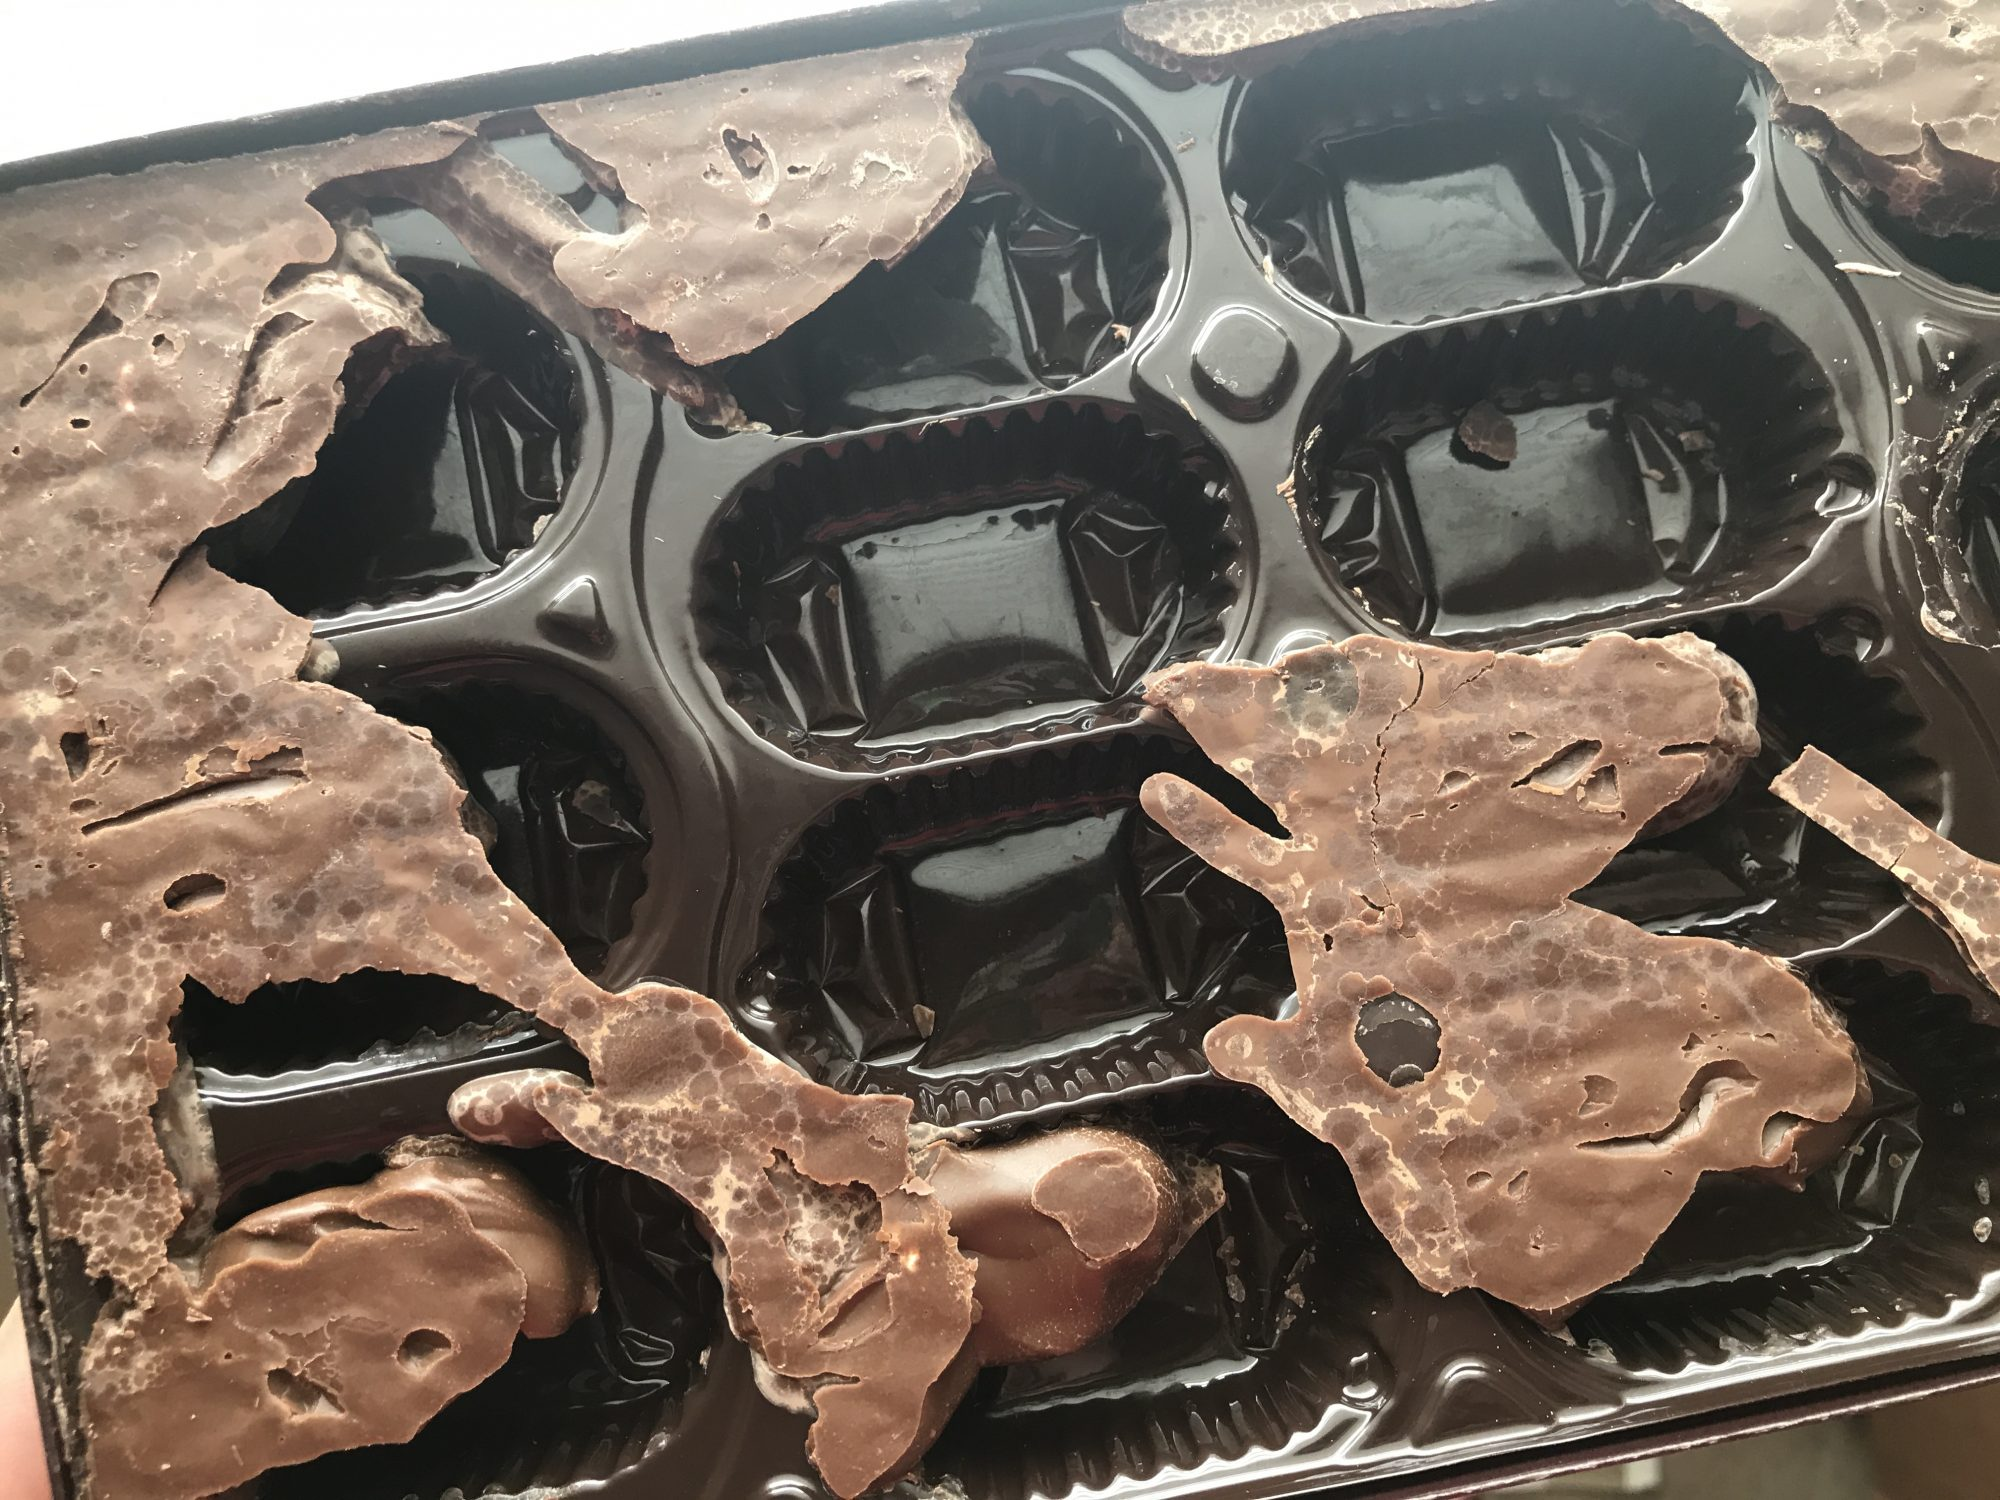 melted chocolate image